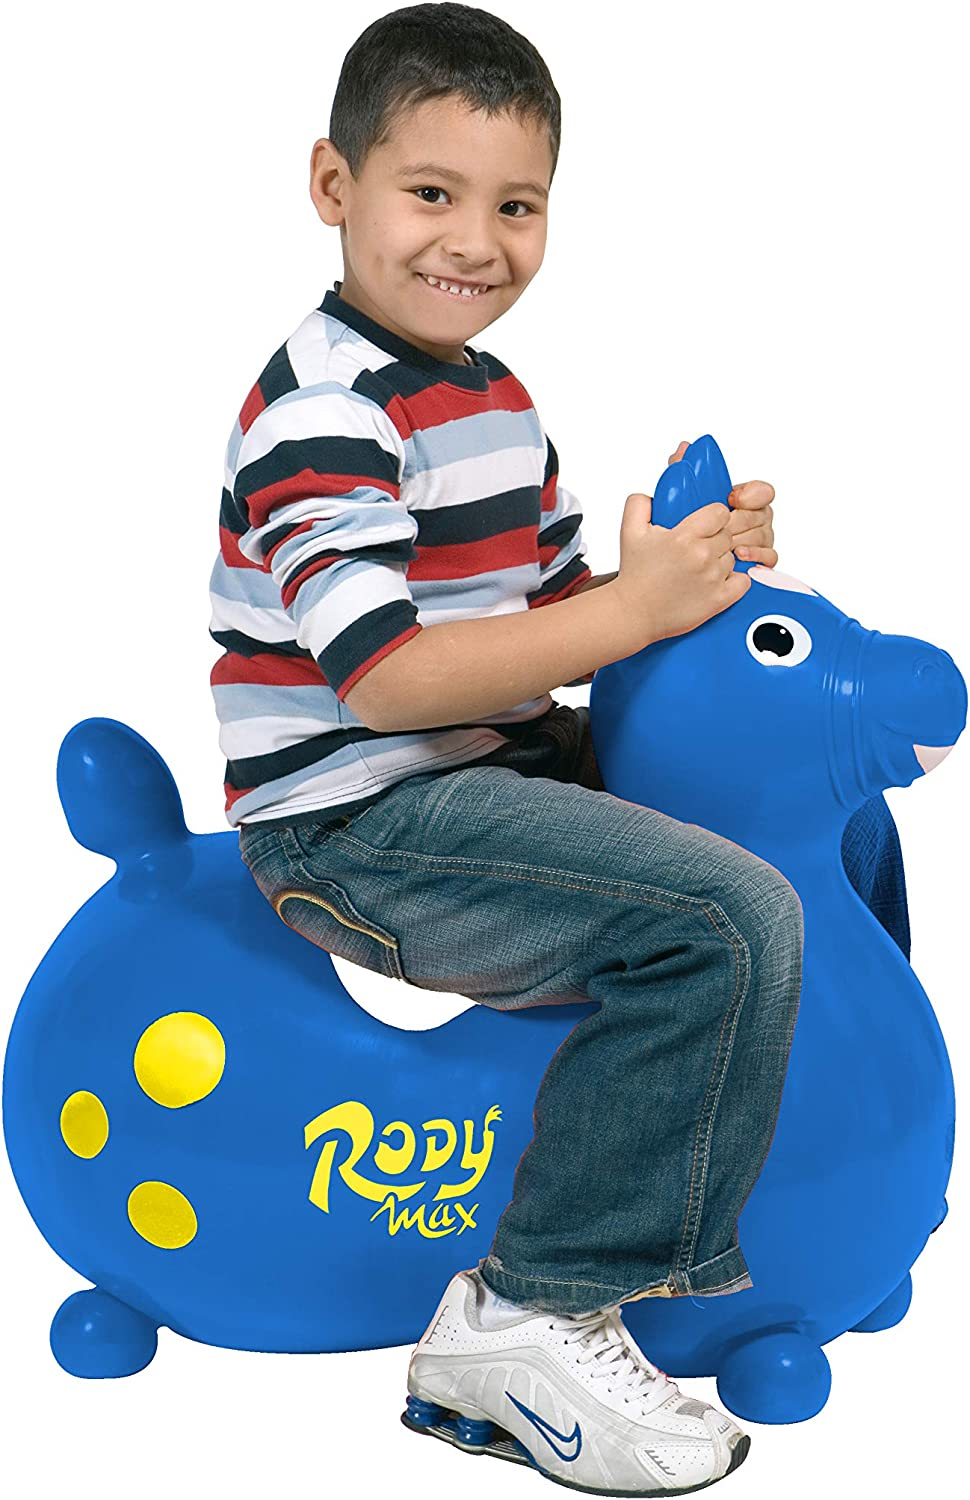 Blue Gymnic Rody Max Inflatable Horse